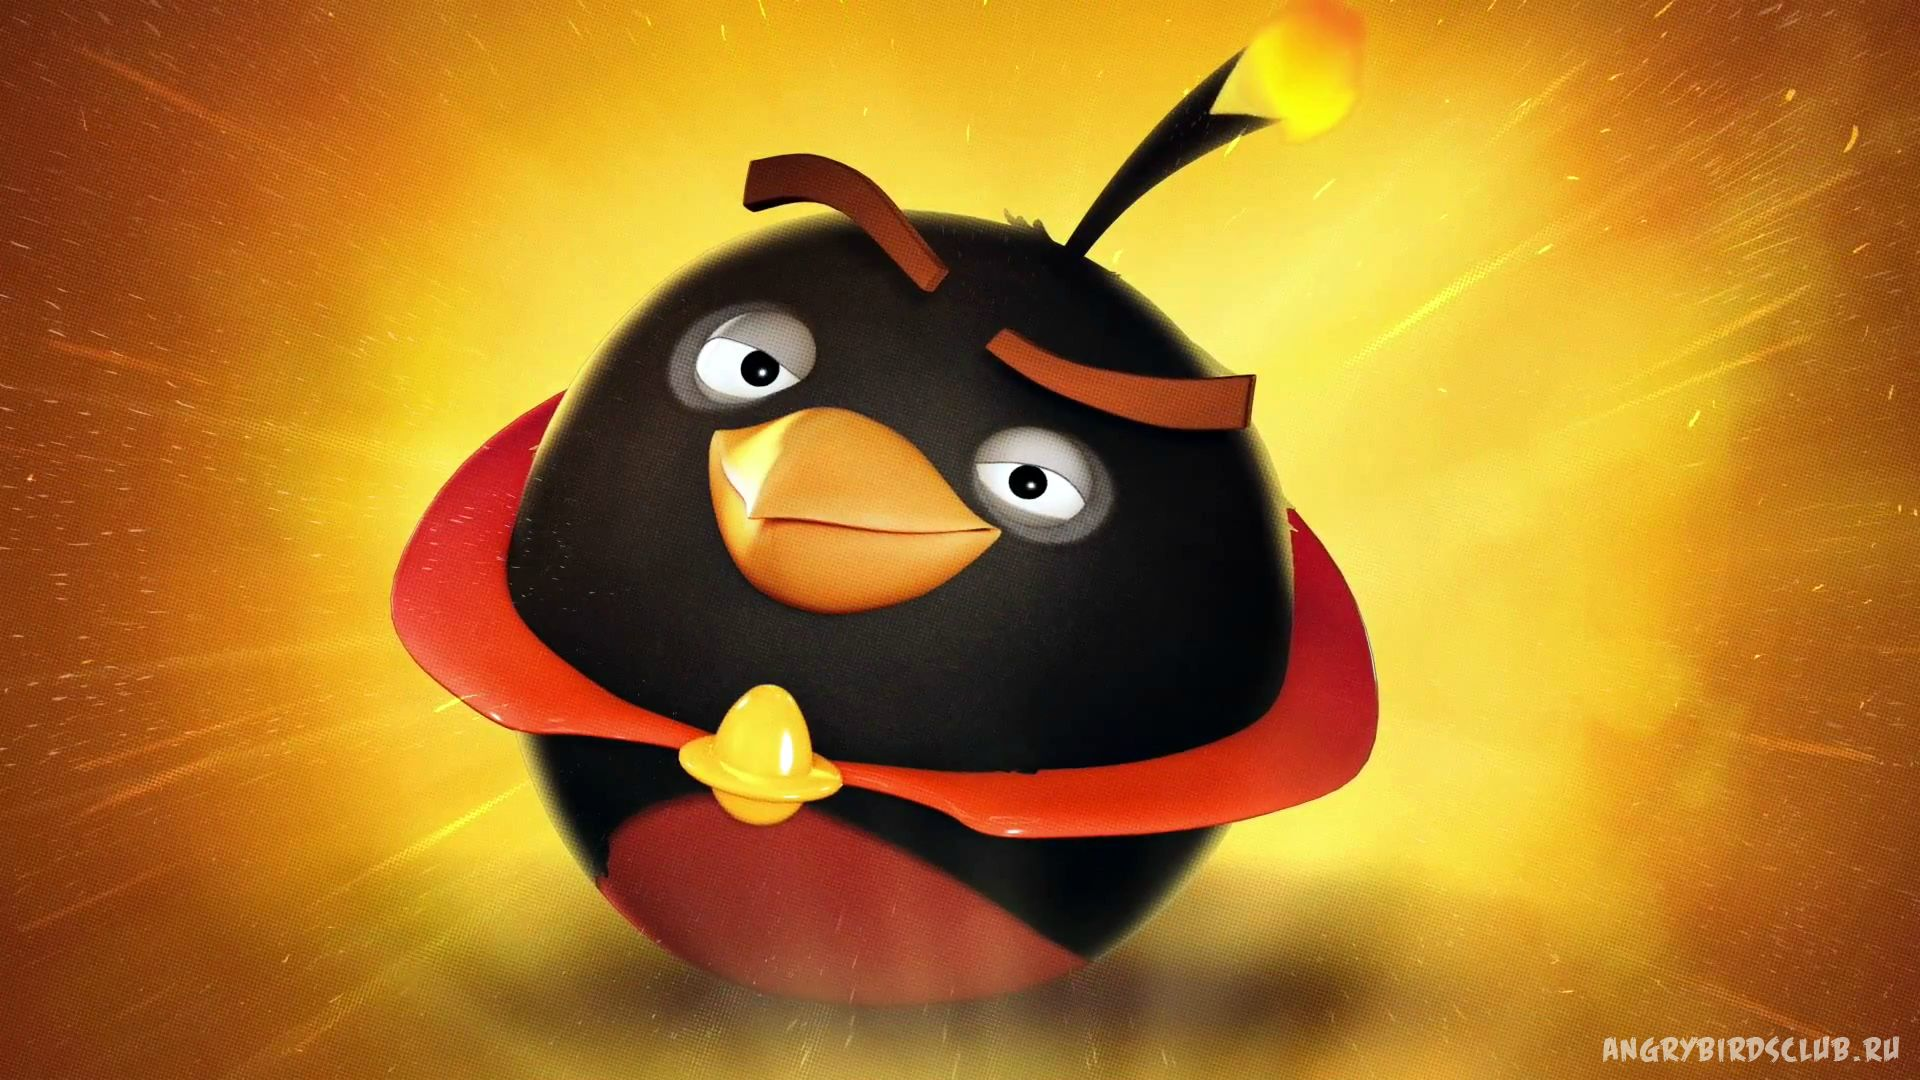 Imagen angry birds space ka boom bomb black bird iphone miniatura de la versin de 1713 6 oct 2012 voltagebd Images